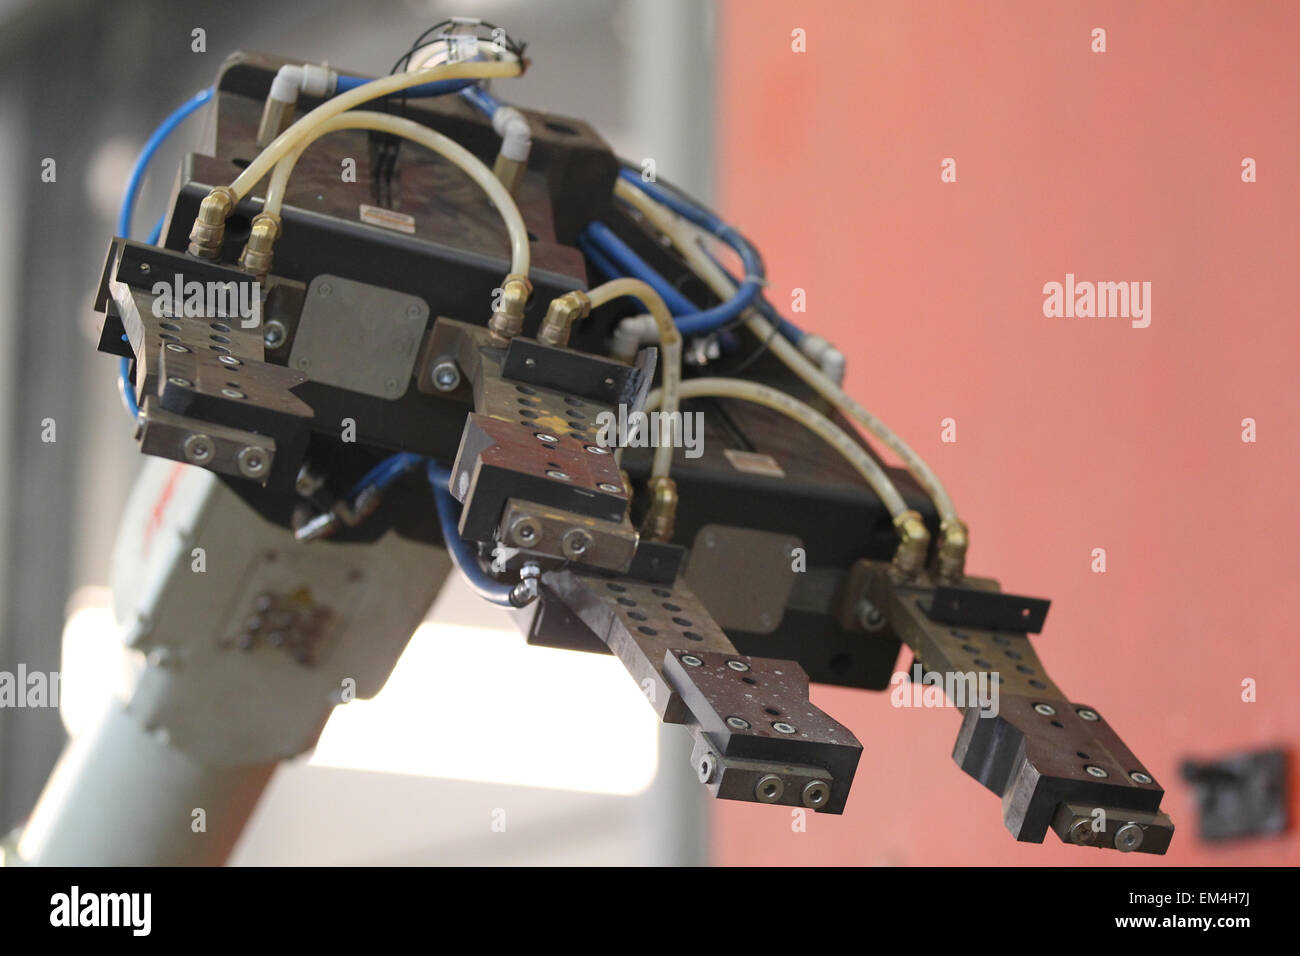 element of an industrial robot for manipulation - Stock Image